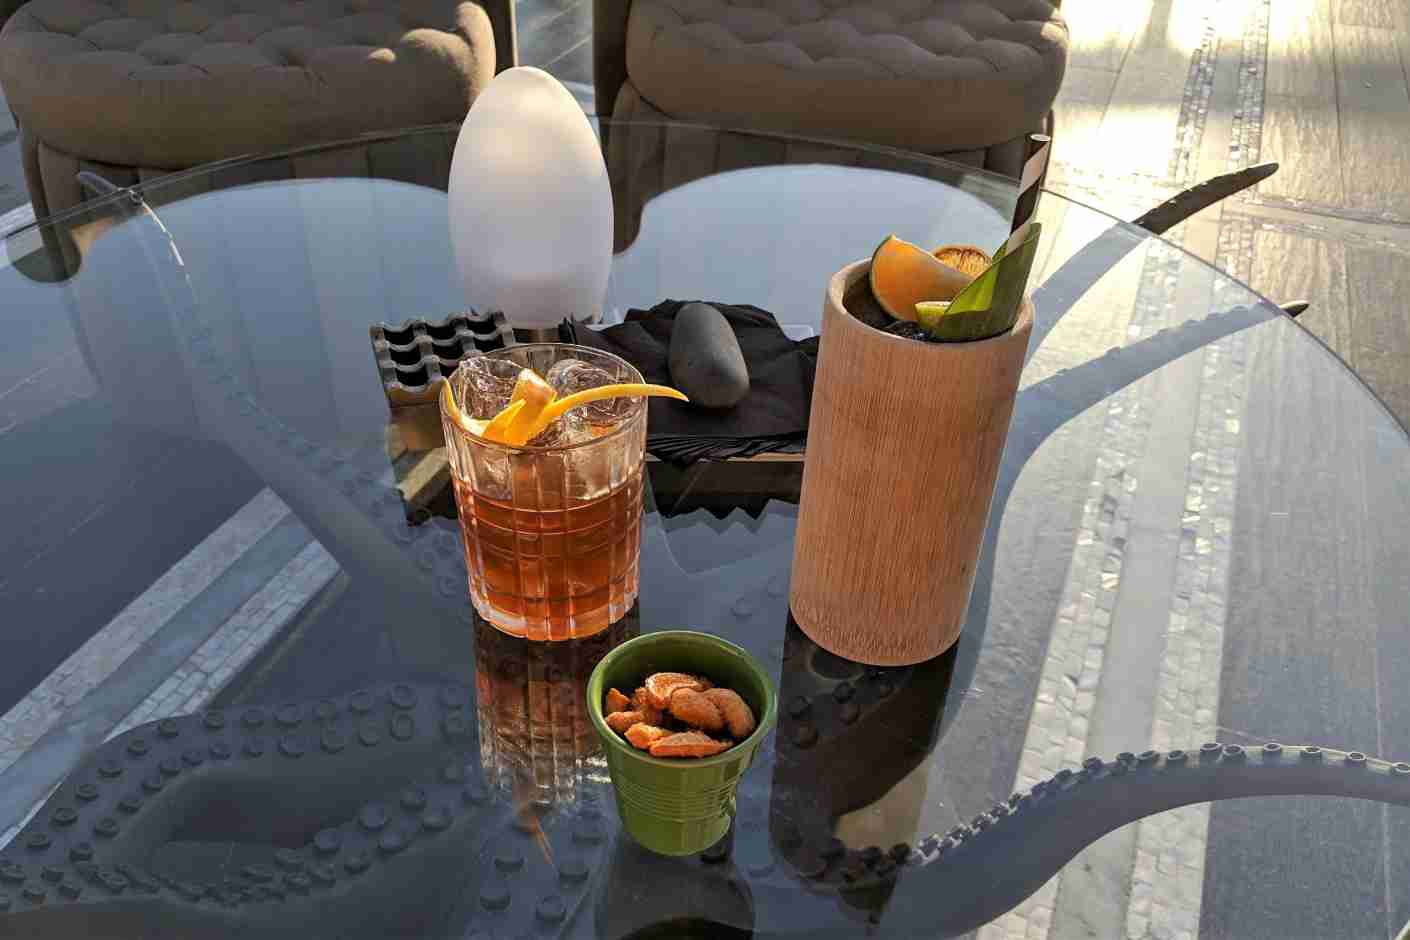 The Nobleman, the drink on the left, is very strong and complex.